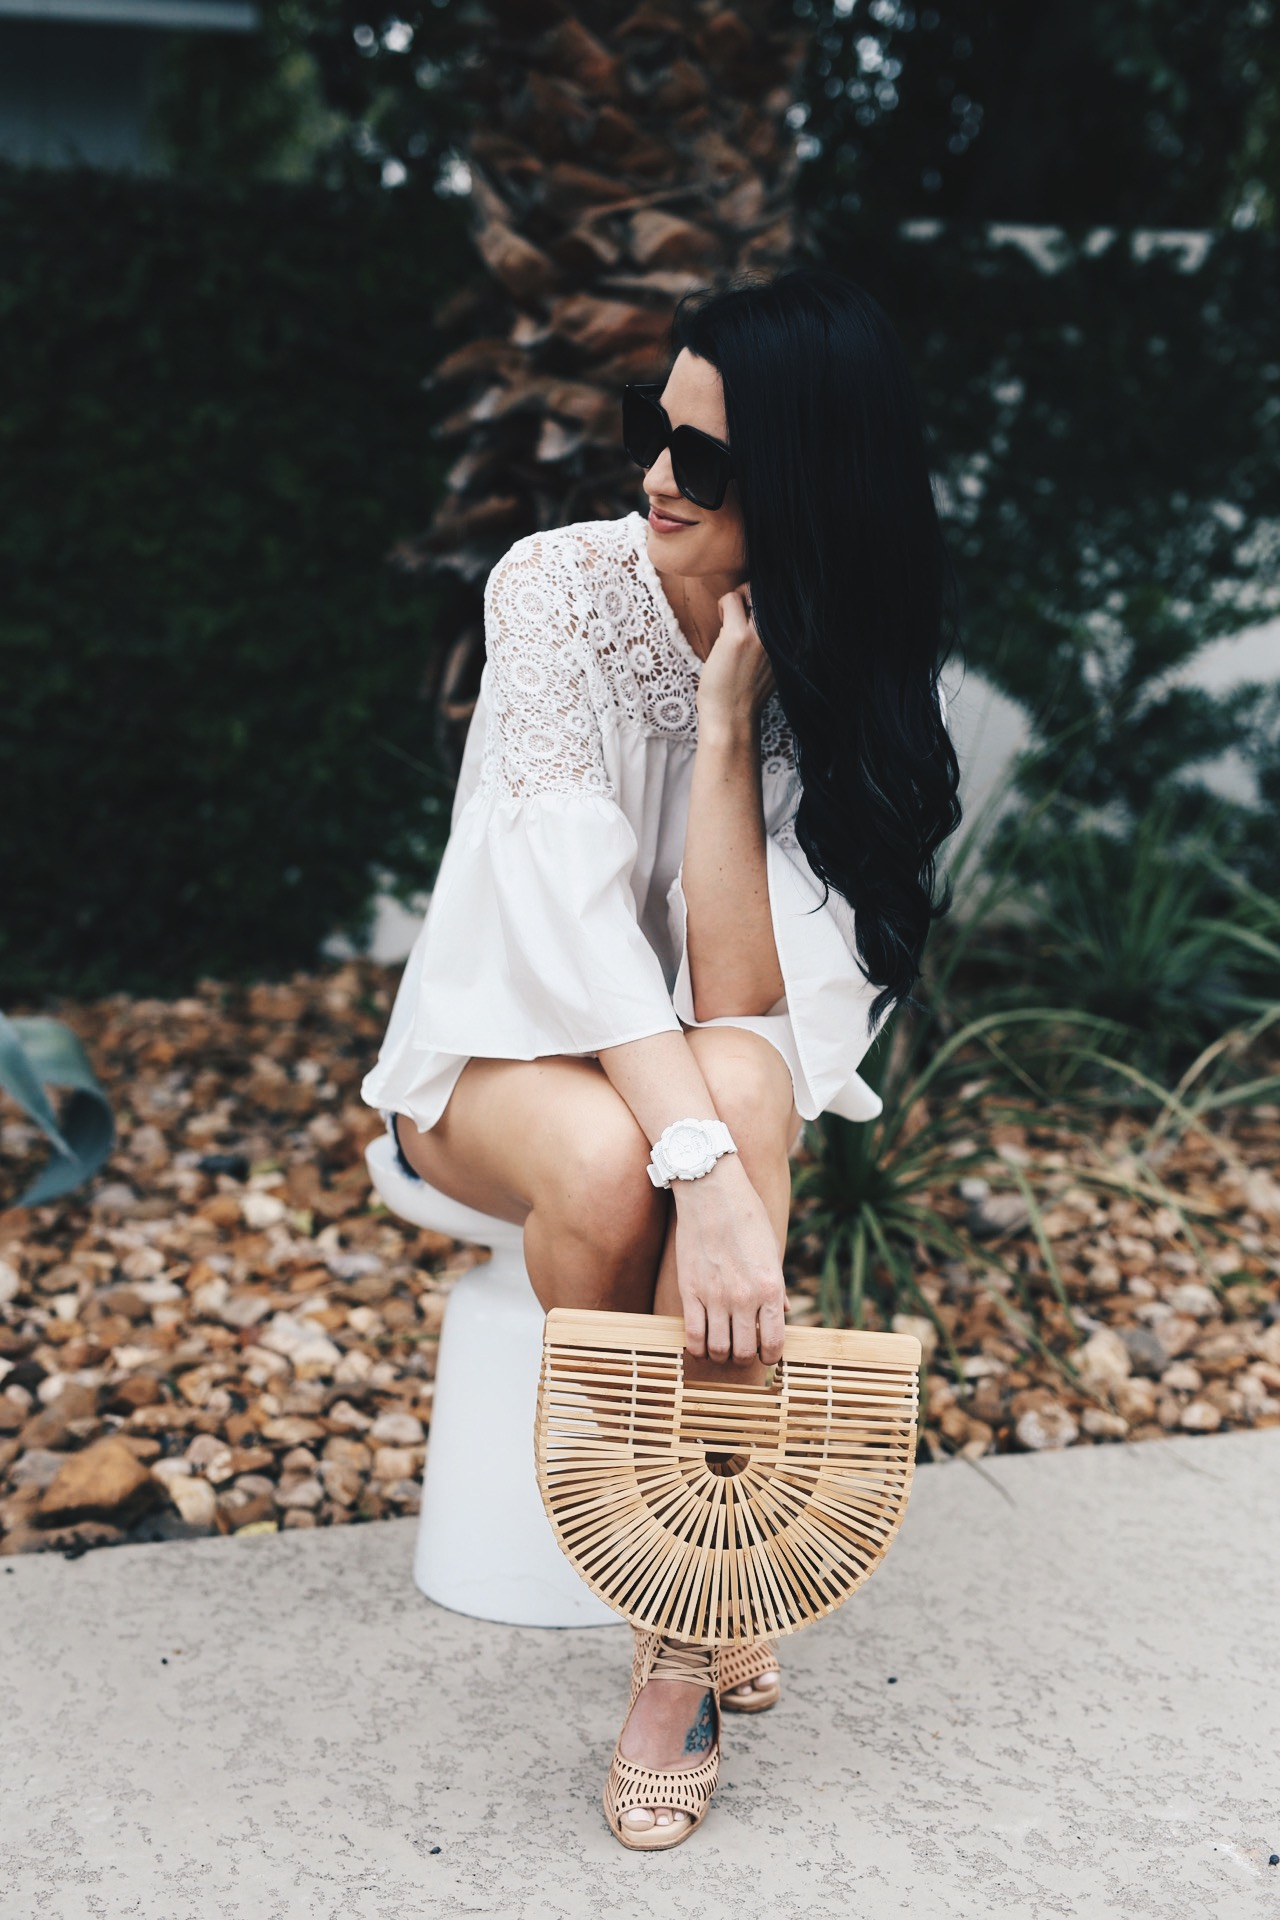 DTKAustin shares why she has always loved G Shock watches by Casio and why you need to invest in one for your summer wardrobe. || Dressed to Kill #summerstyle #summerfashion #summeroutfit - G Shock Smart Watch review by popular Austin style blogger Dressed to Kill